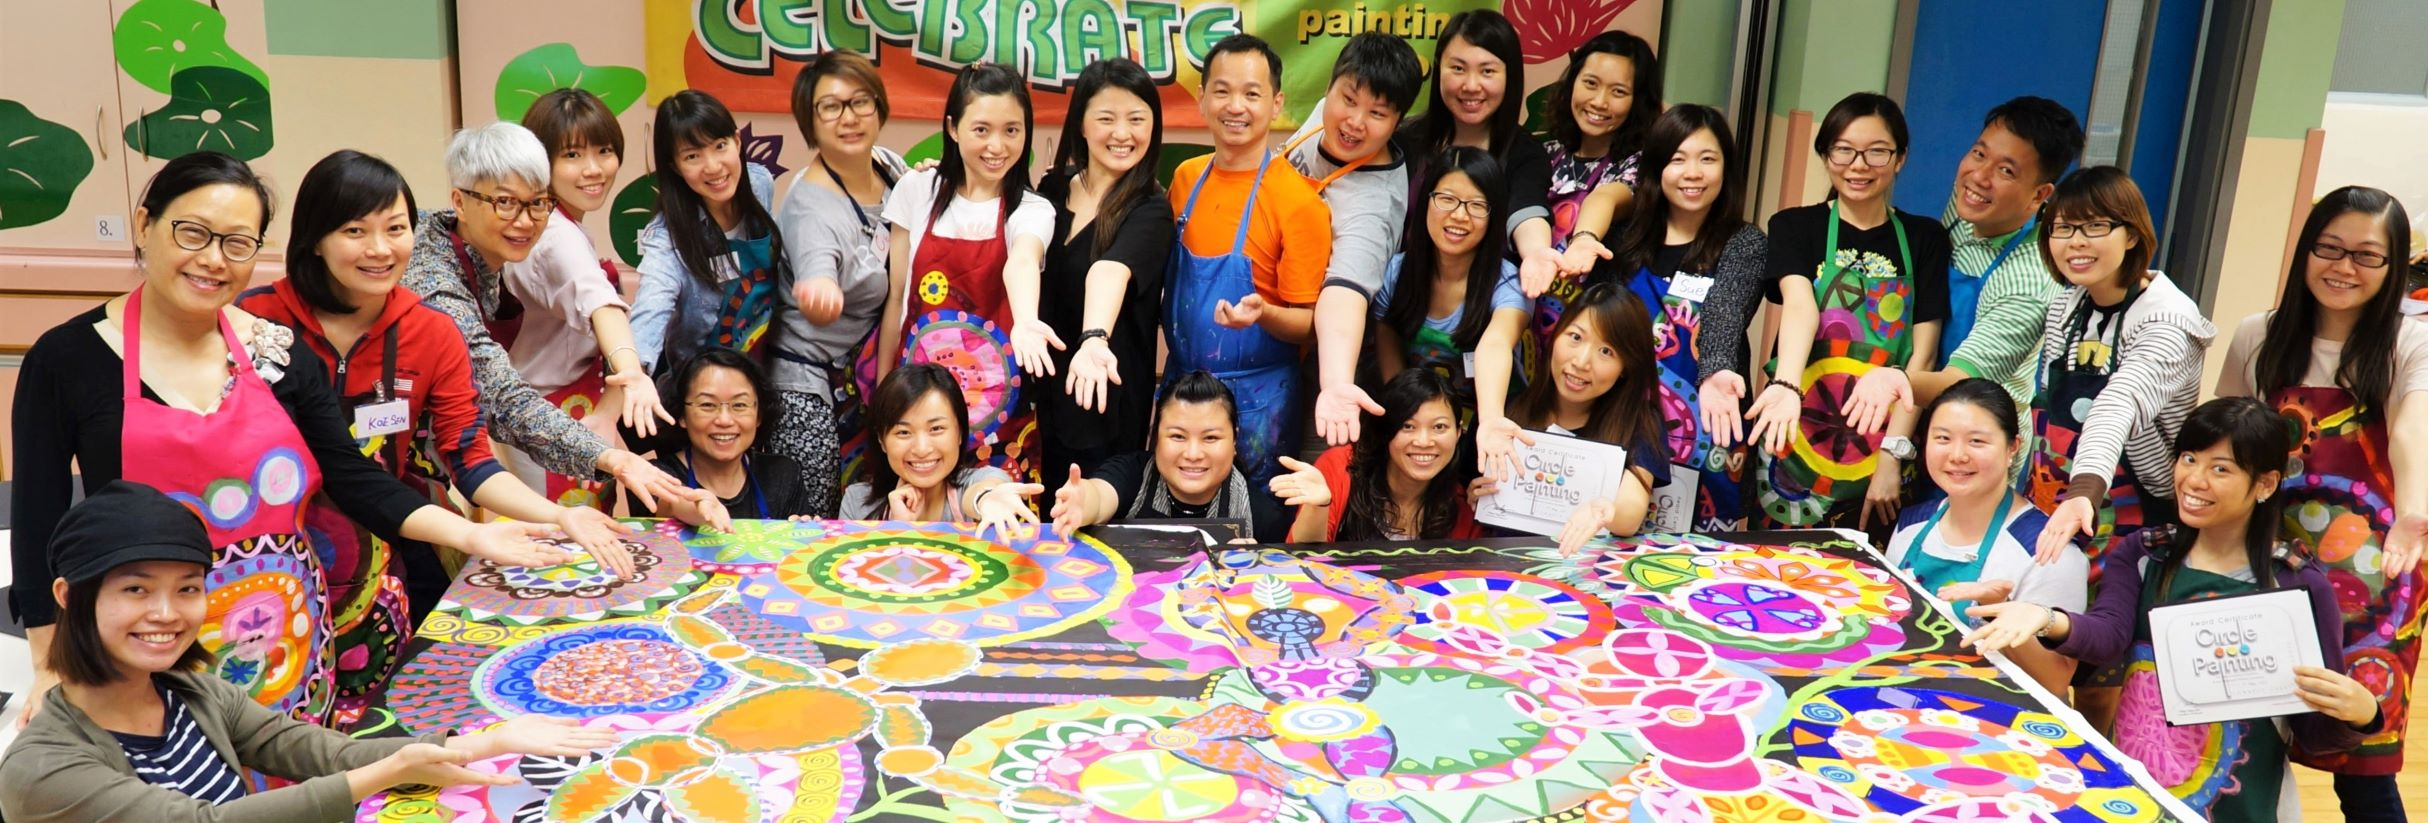 group of people smiling next to their painting after participating in a collaborative art class